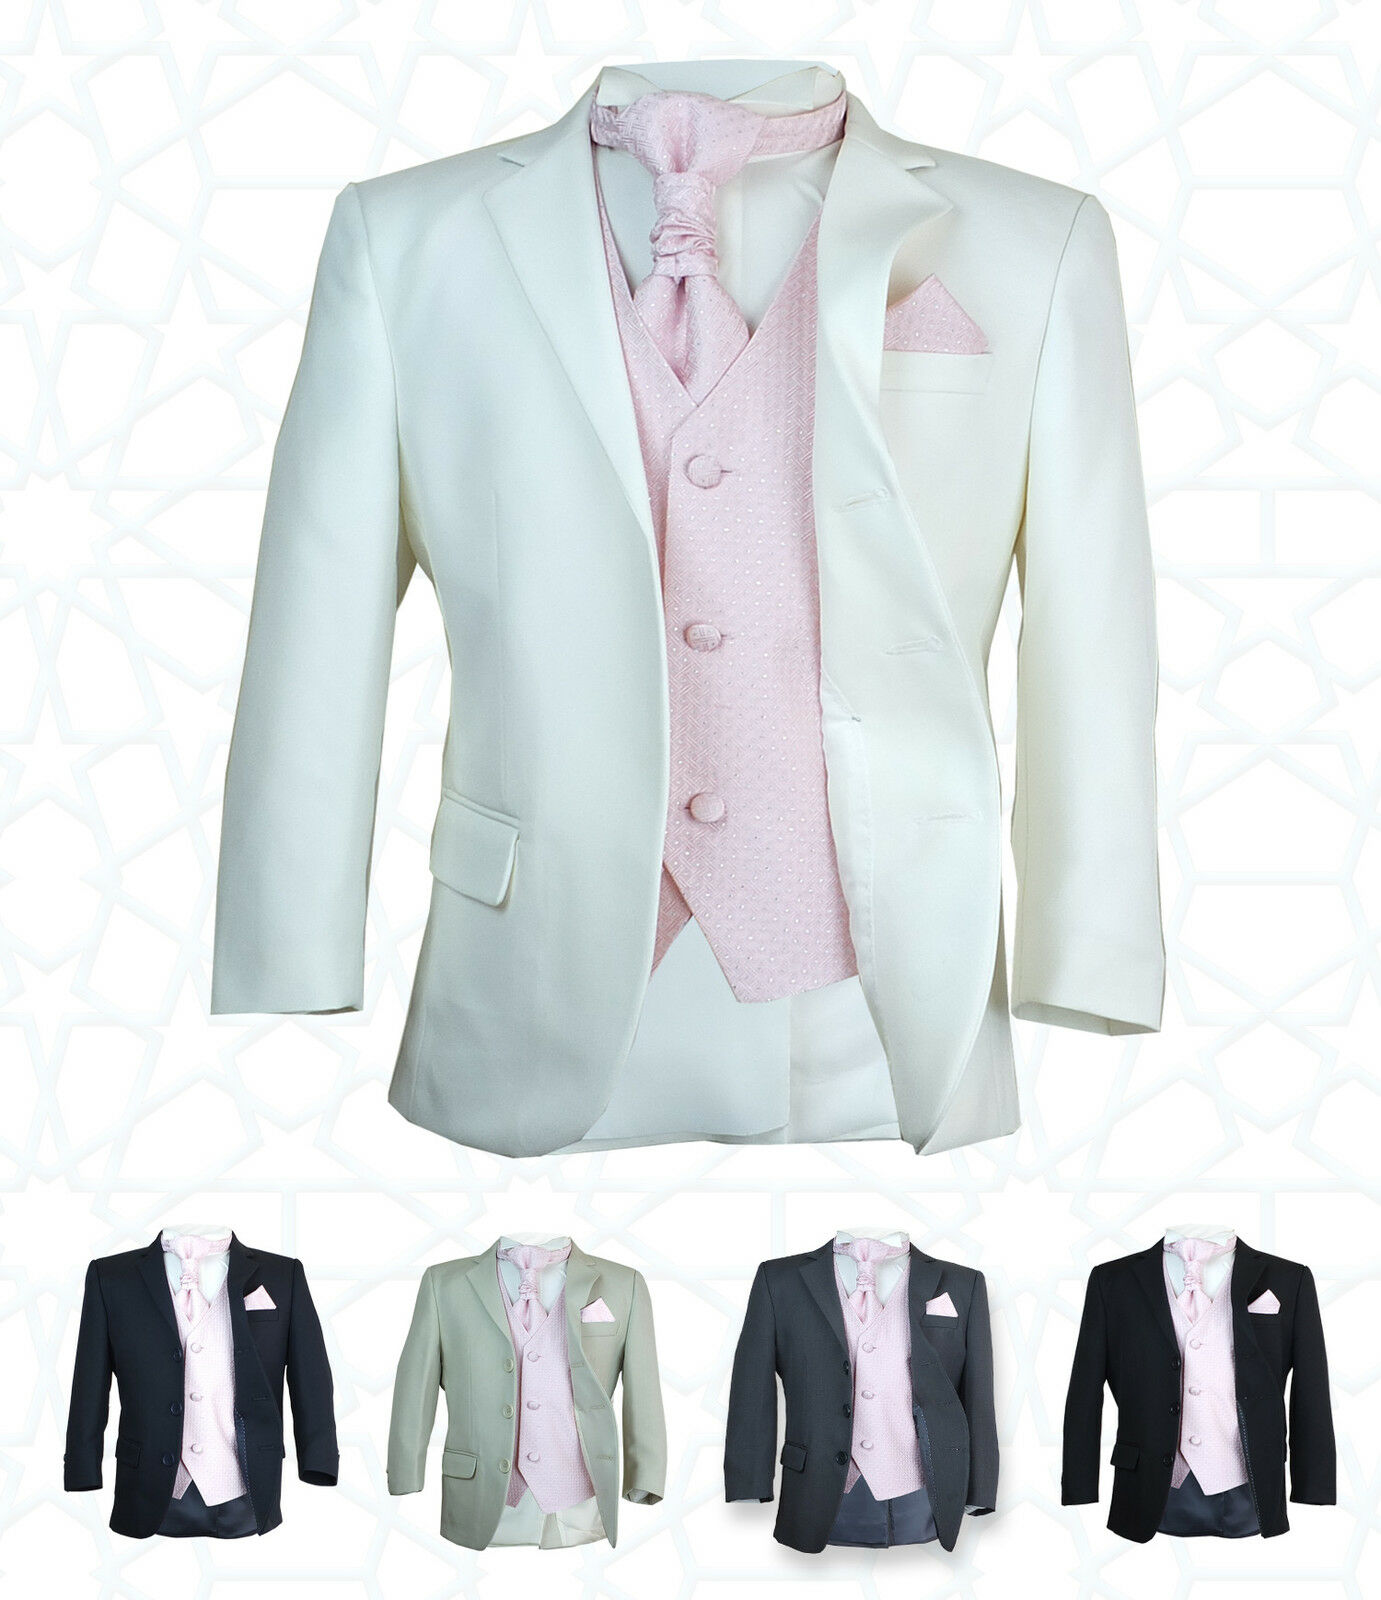 Sirri Boys 5pc Formal Wedding Suits Pink Cravat Prom Page